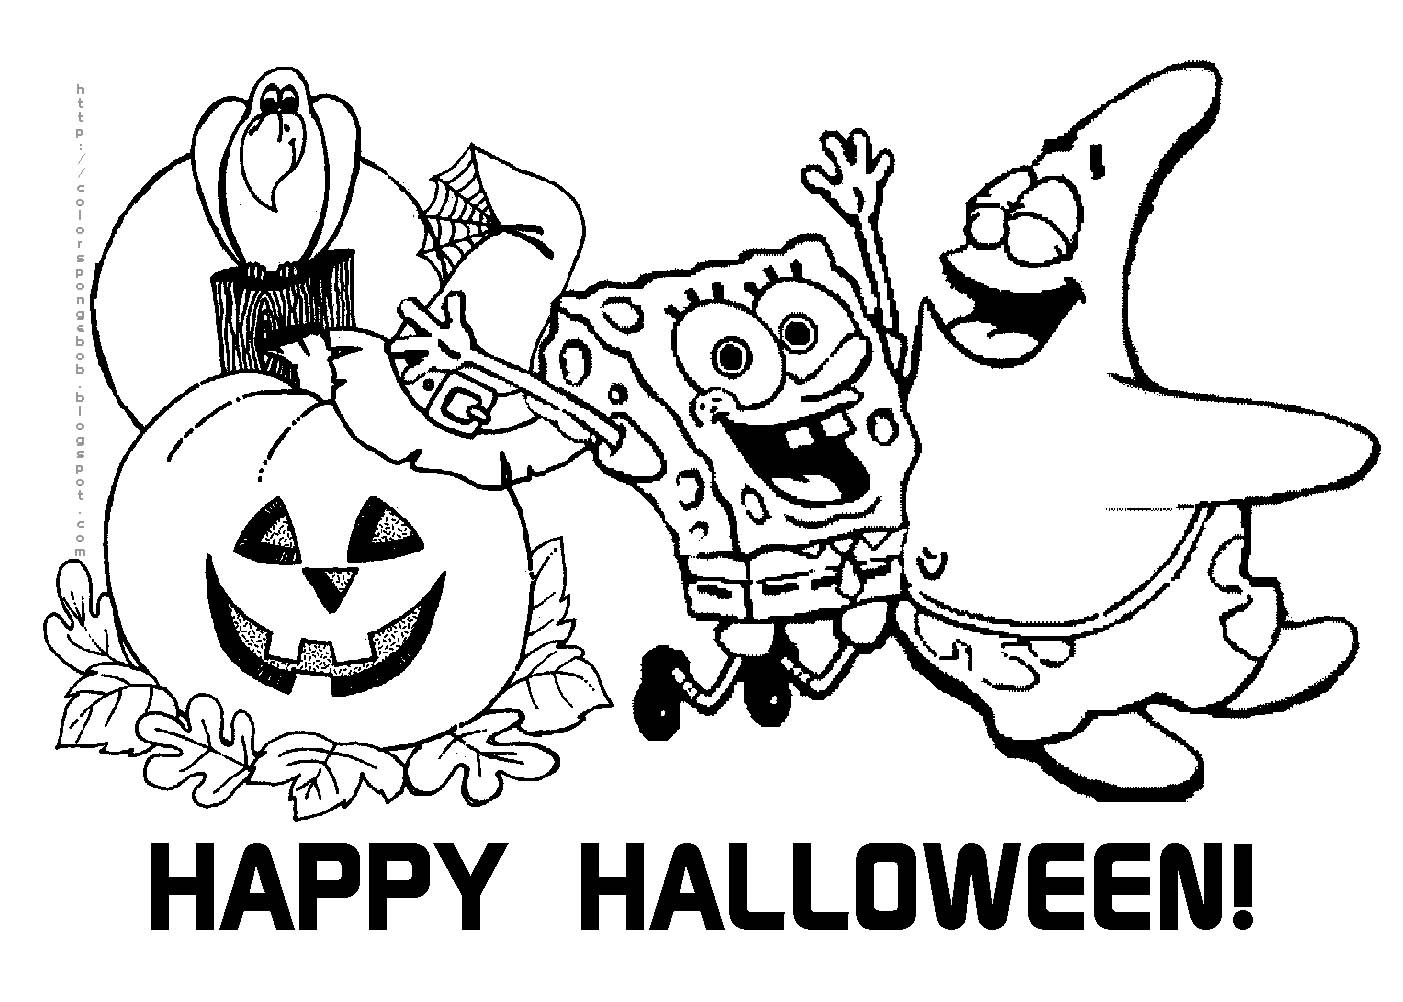 Halloween Coloring Pages To Print 01